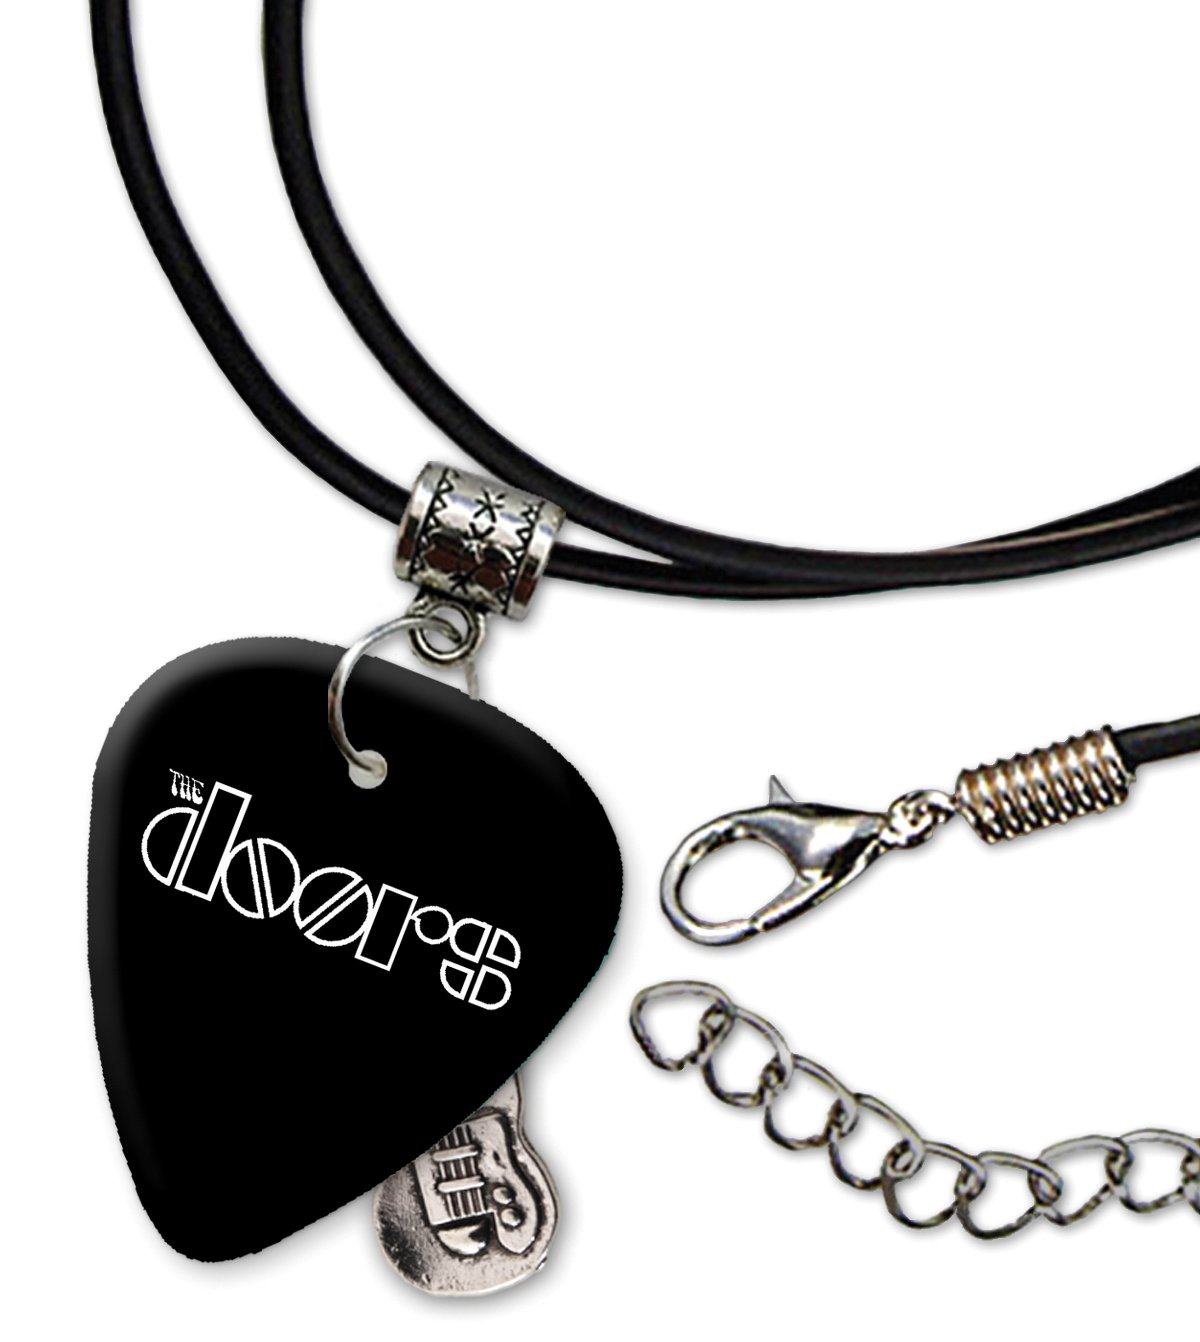 The Doors Band Logo Collana di corda di chitarra plettro (H) We Love Guitars